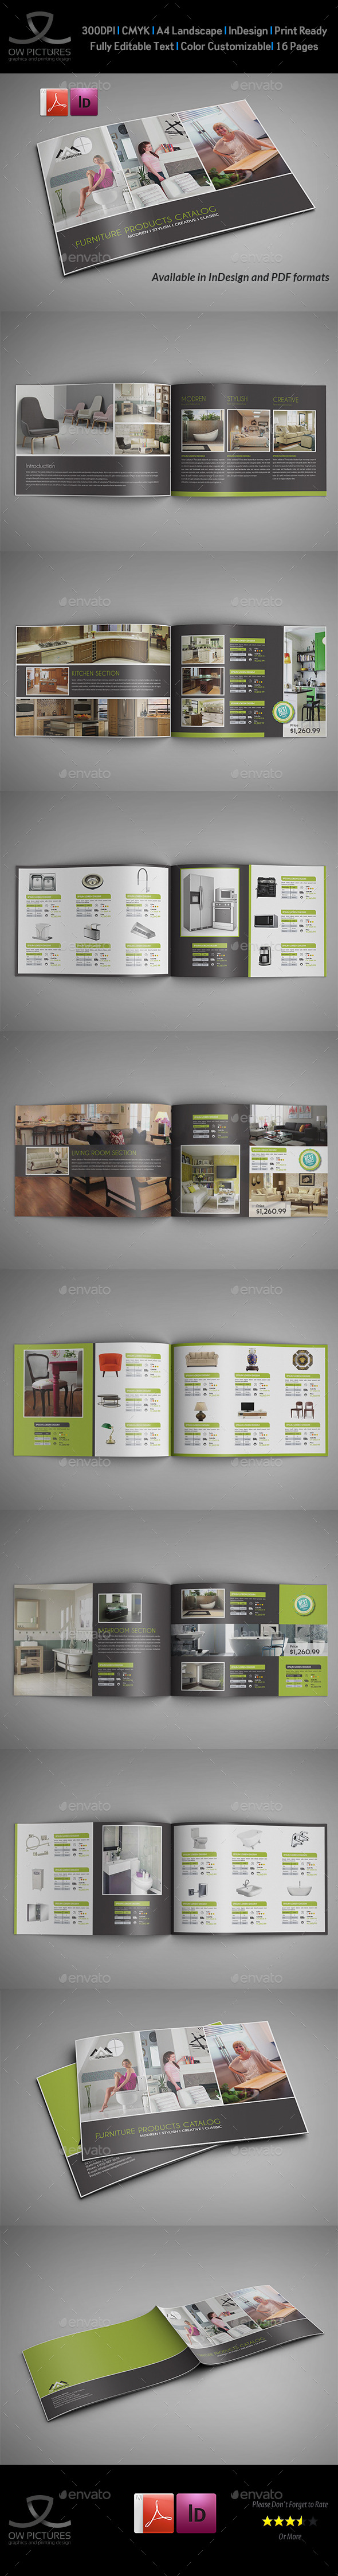 Furniture Products Catalog Brochure - 16 Pages - Catalogs Brochures